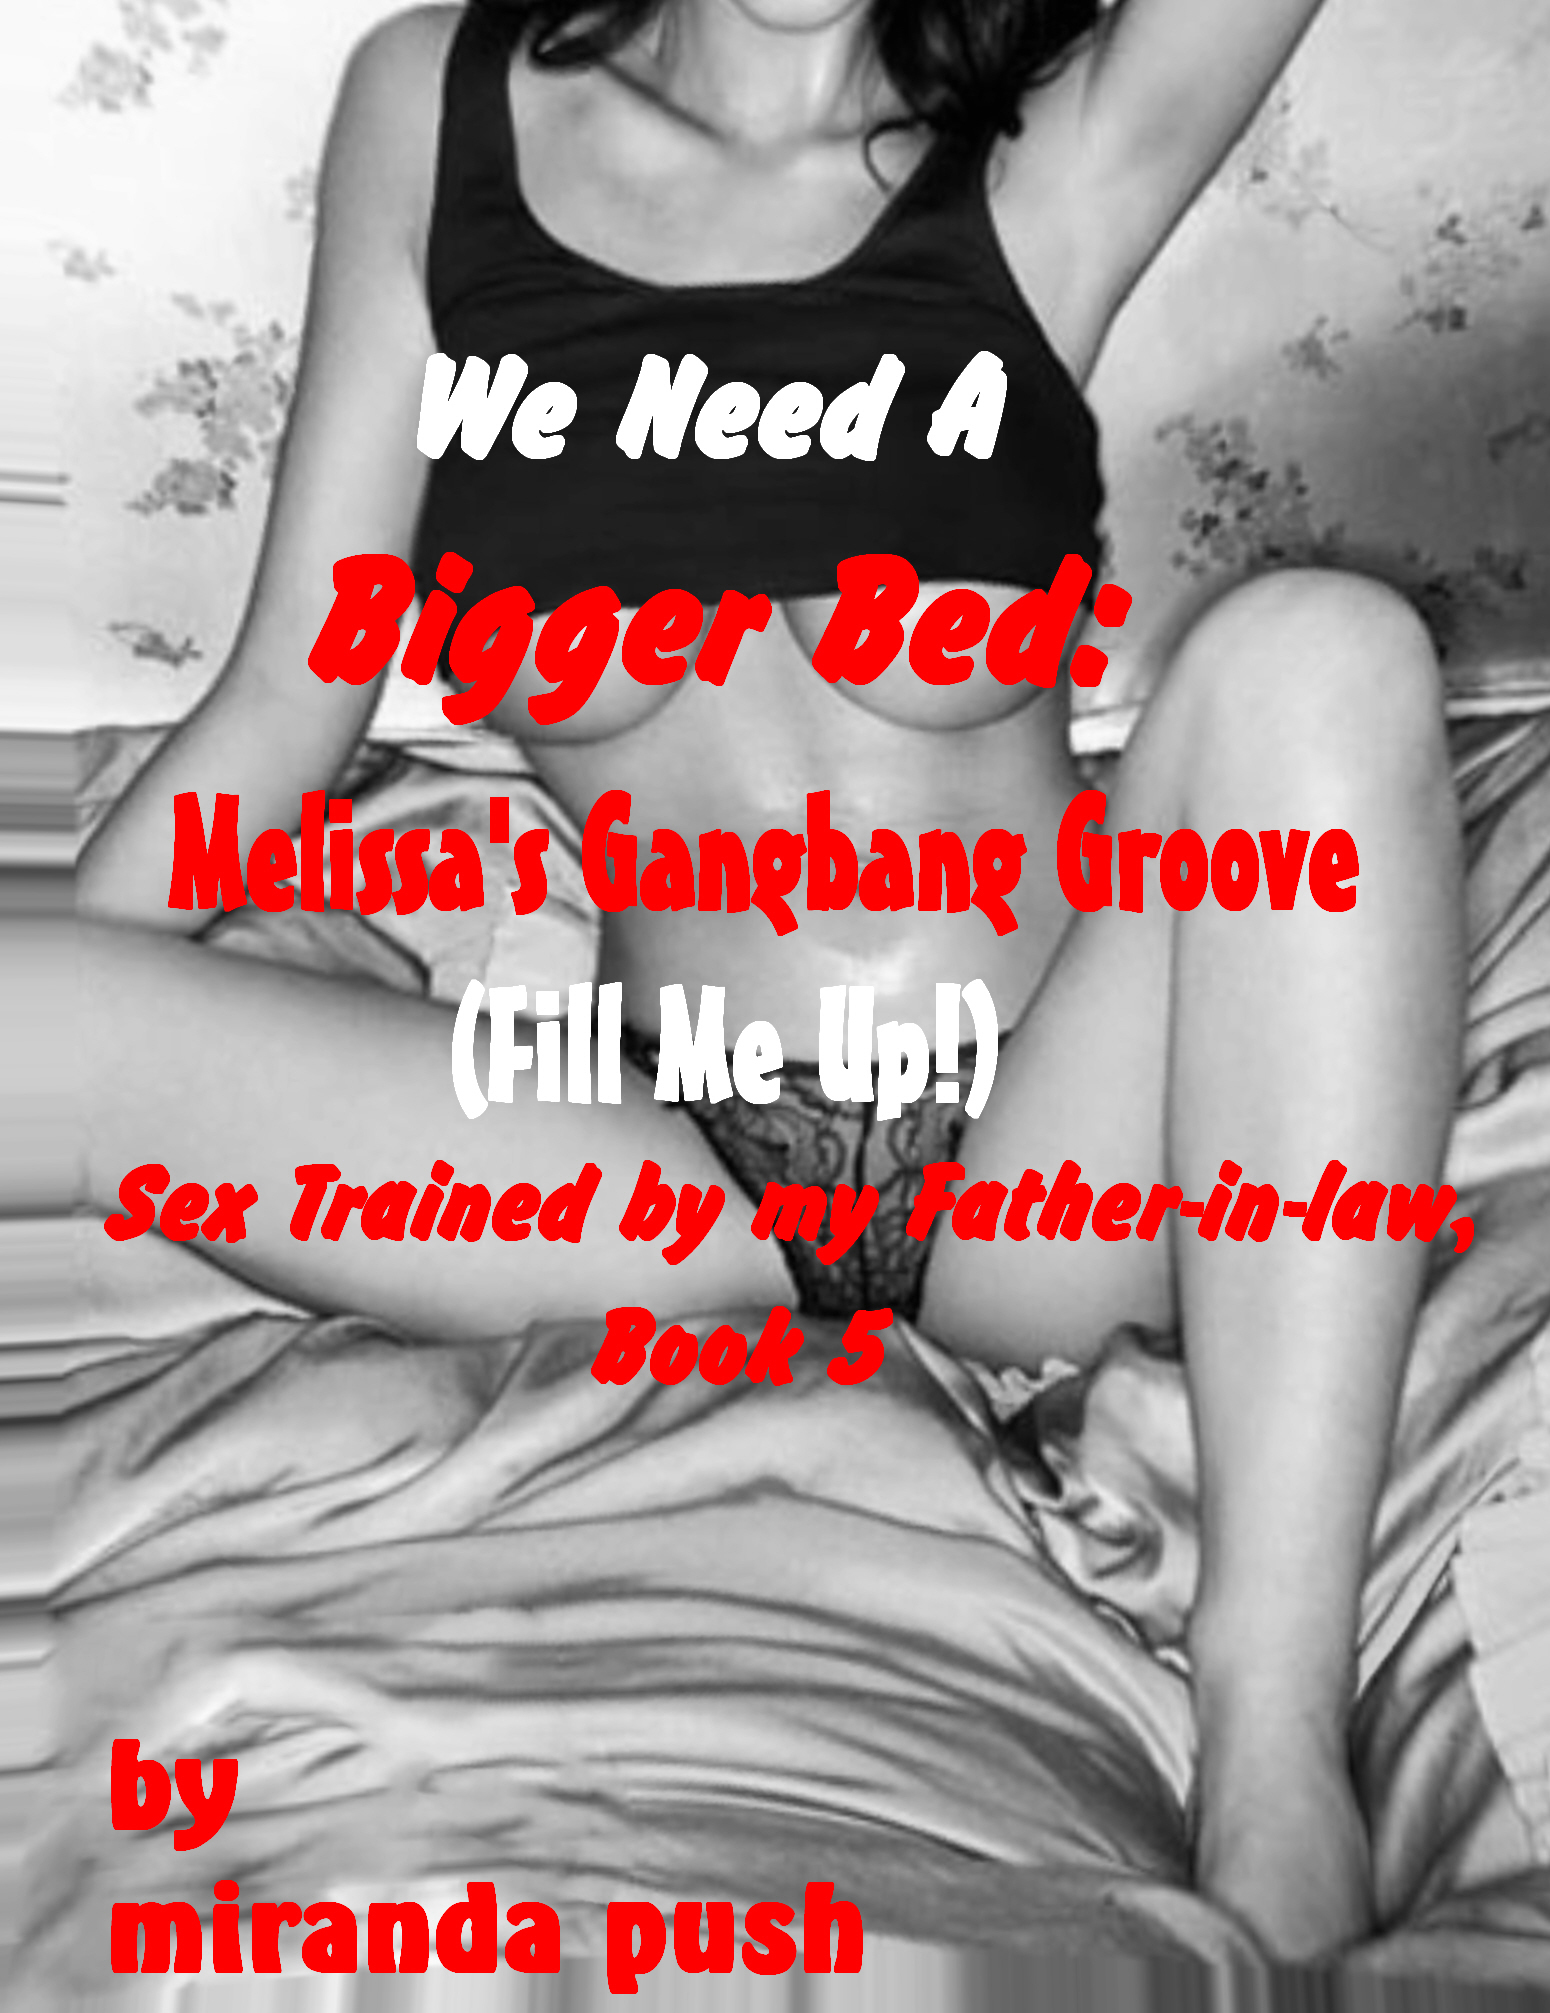 We Need A Bigger Bed: Melissa's Gangbang Groove (Fill Me Up!) Sex Trained by my Father-in-Law, Book 5